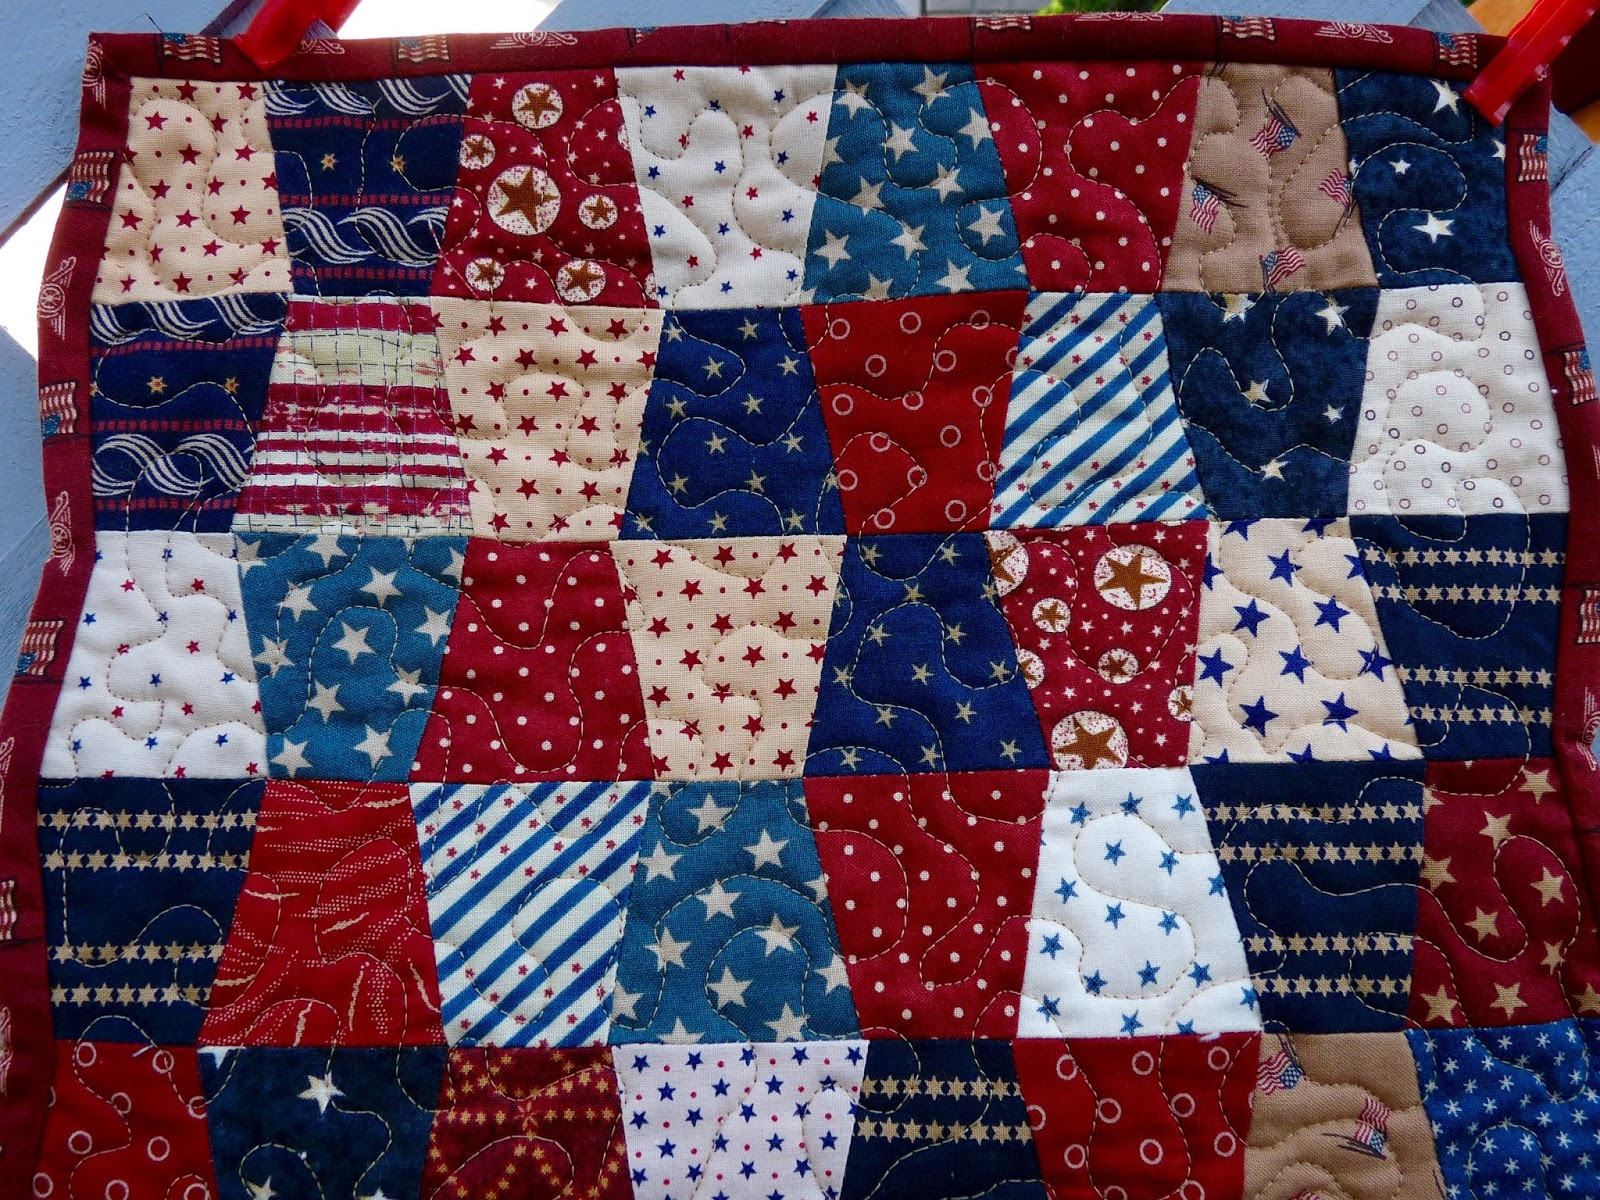 Country Log Cabin Mini Tumbler Quilt Finished